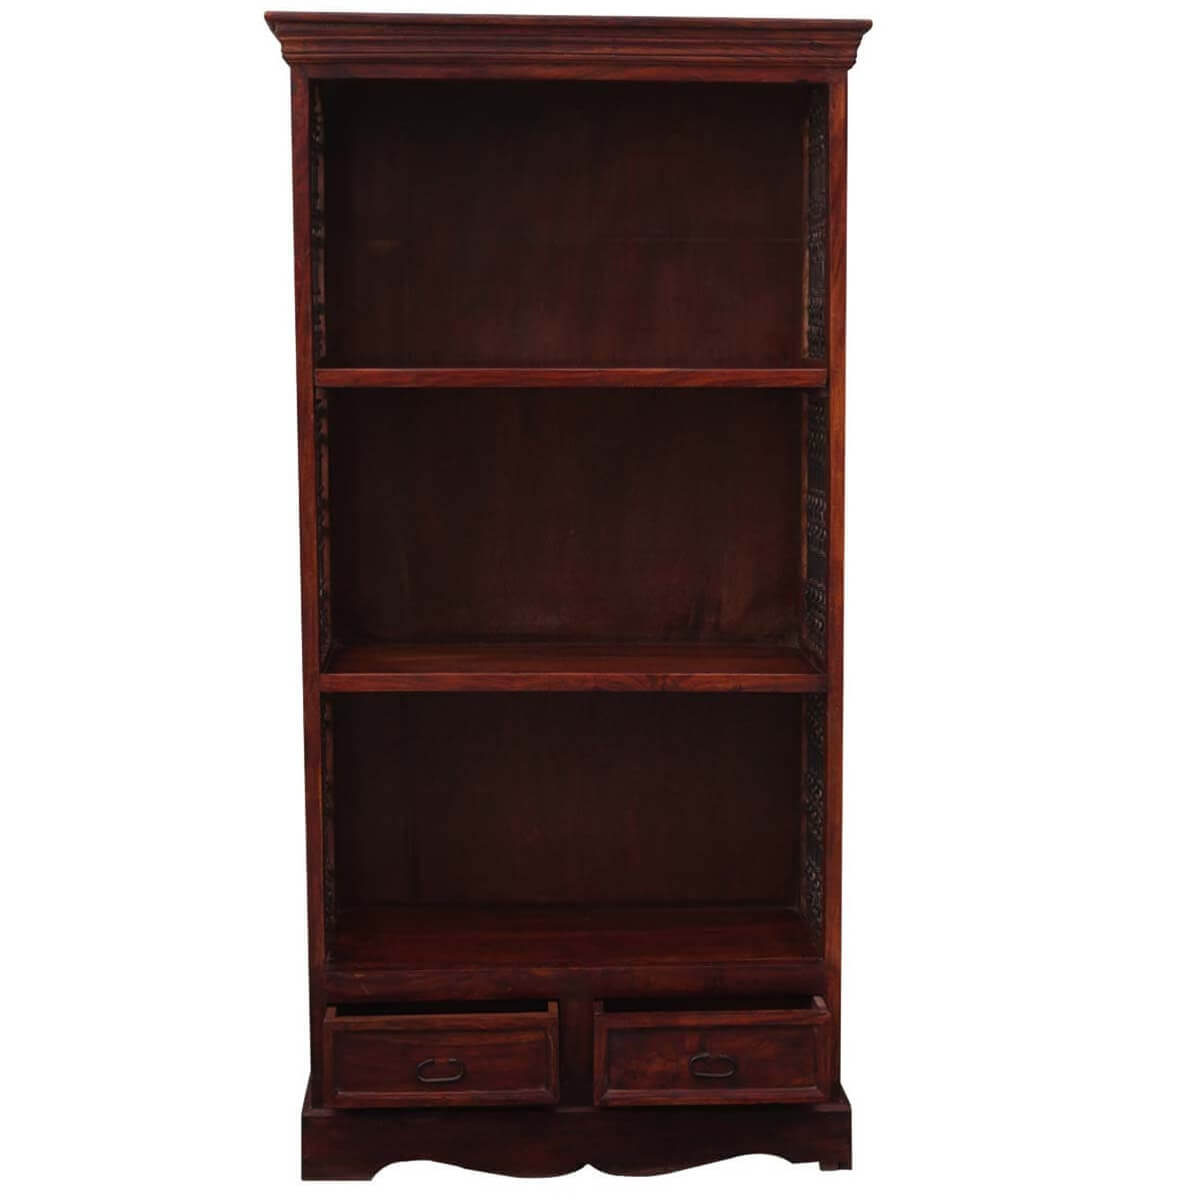 "71"" Tall Solid Wood & Wrought Iron 3 Shelf Display Single"